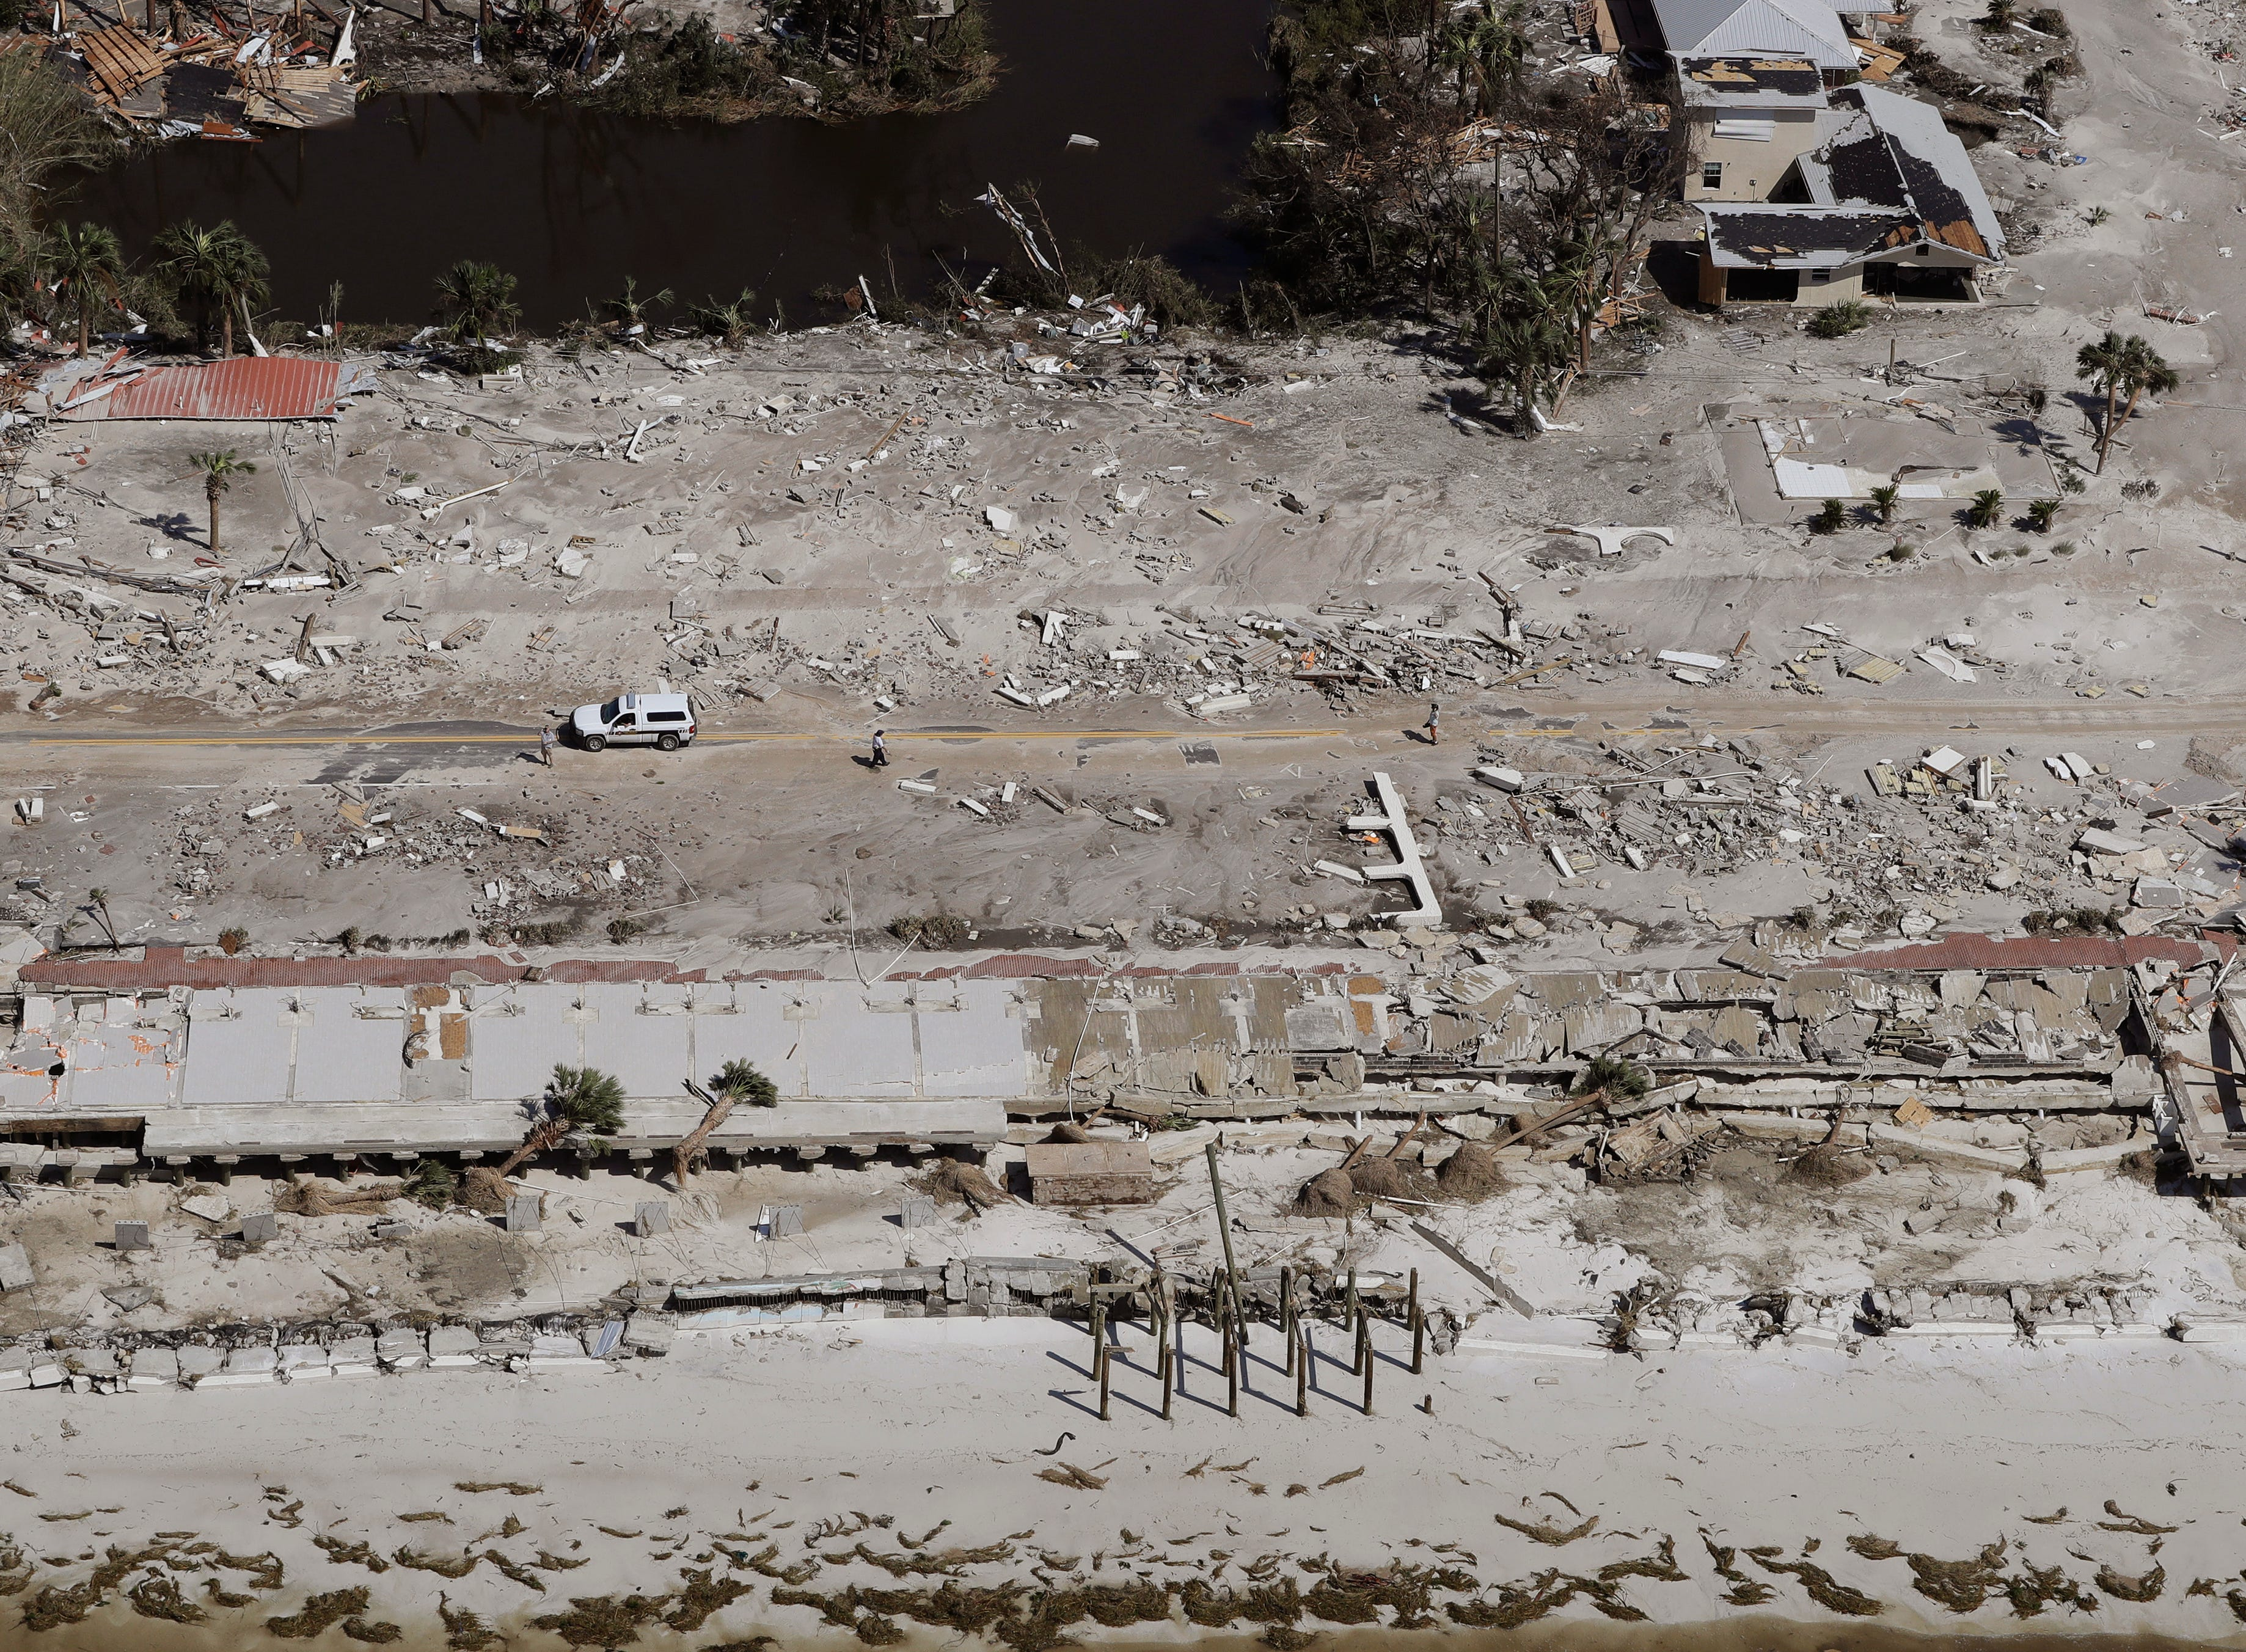 Homes washed away by Hurricane Michael are shown in this aerial photo Thursday, Oct. 11, 2018, in Mexico Beach, Fla.  Michael made landfall Wednesday as a Category 4 hurricane with 155 mph (250 kph) winds and a storm surge of 9 feet (2.7 meters). (AP Photo/Chris O'Meara)